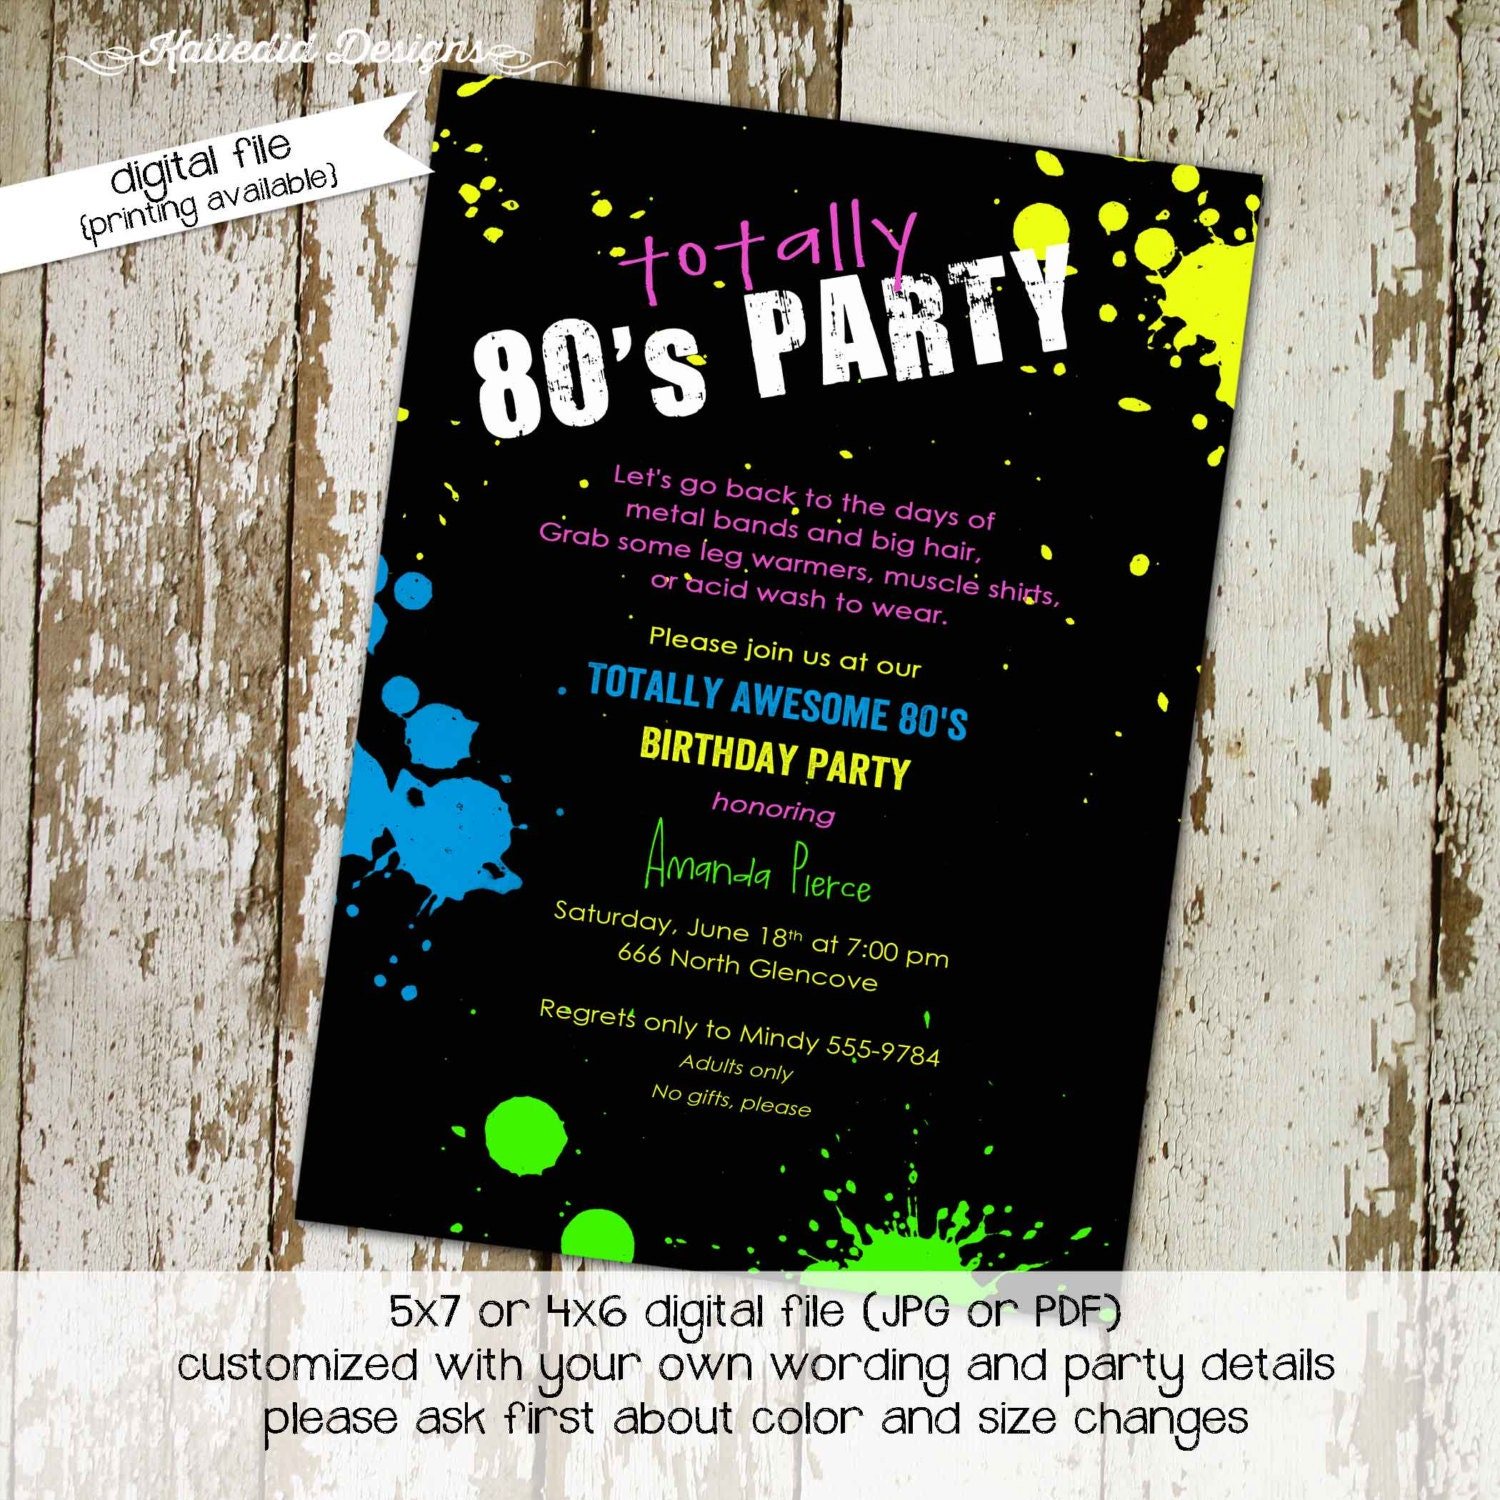 80s birthday invitation Totally awesome 80s party retro – 80s Party Invitation Wording